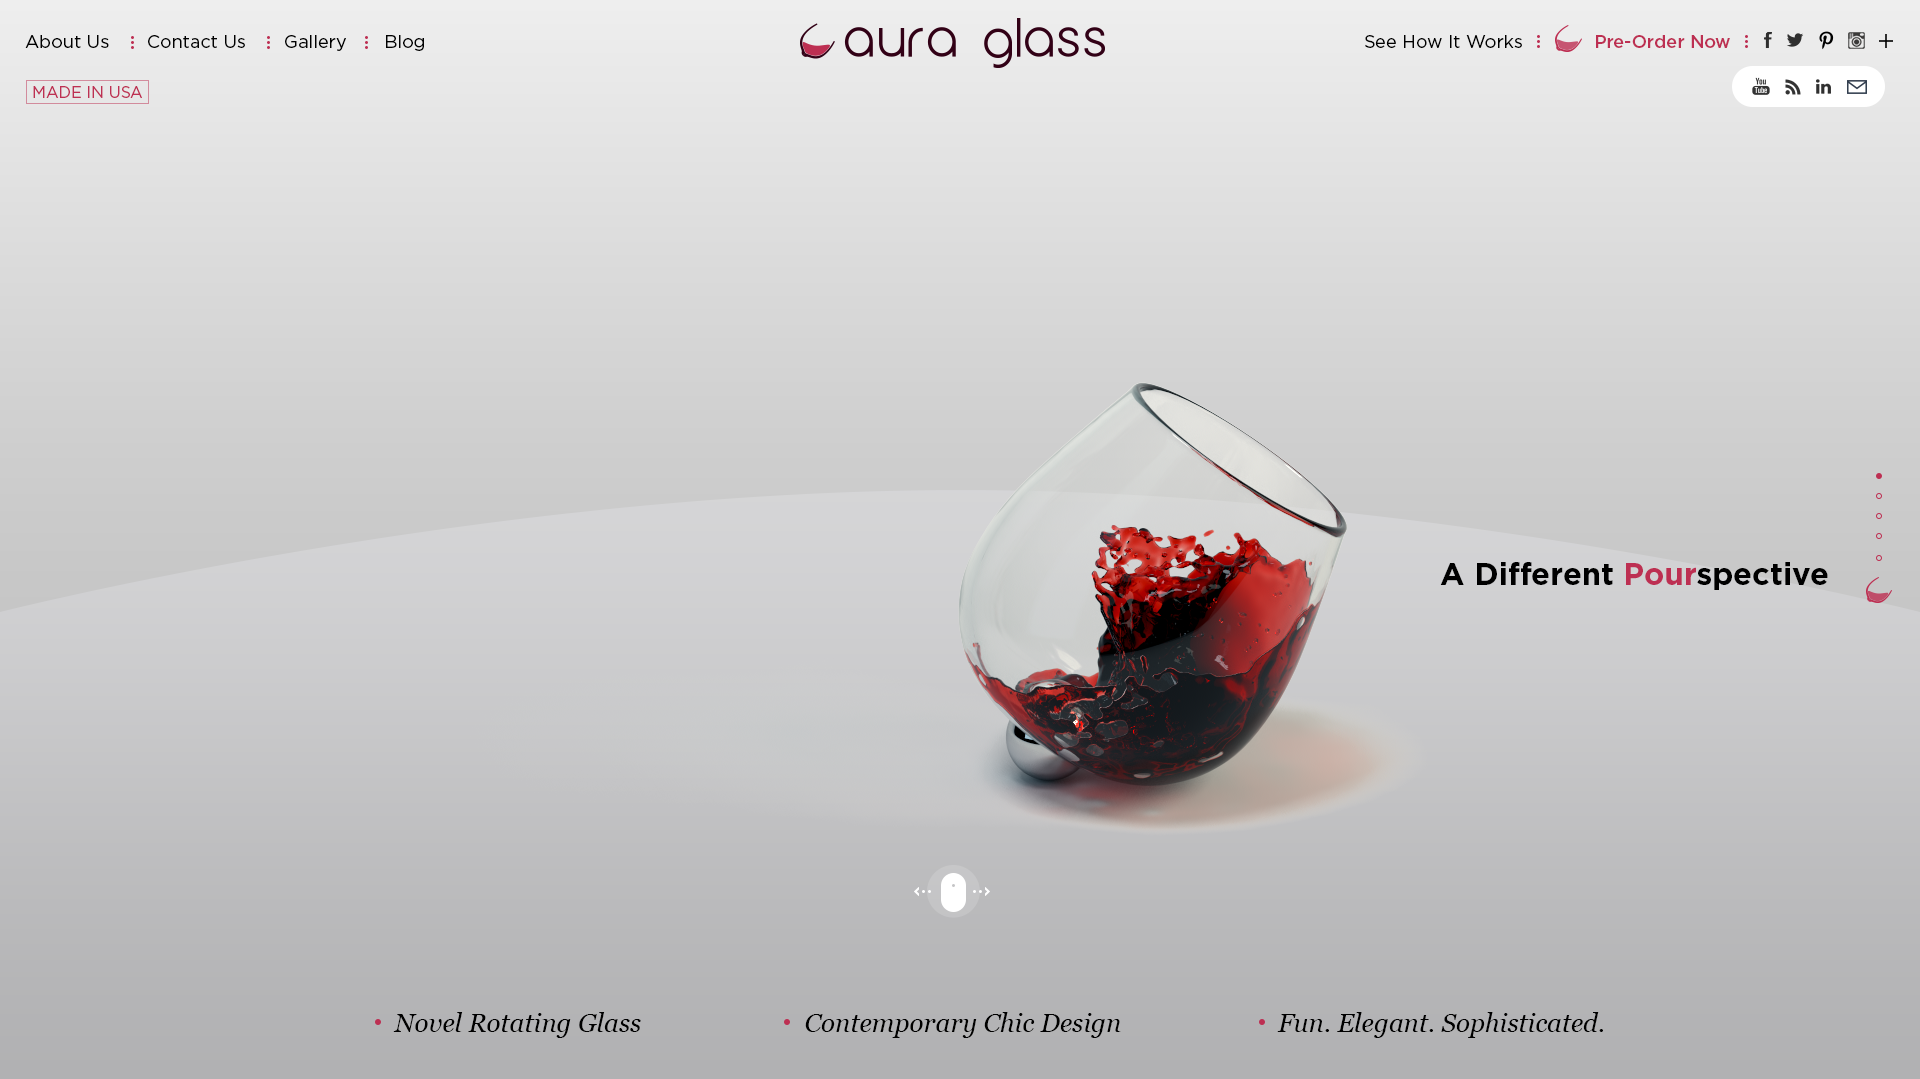 Aura glass Website Design Preview